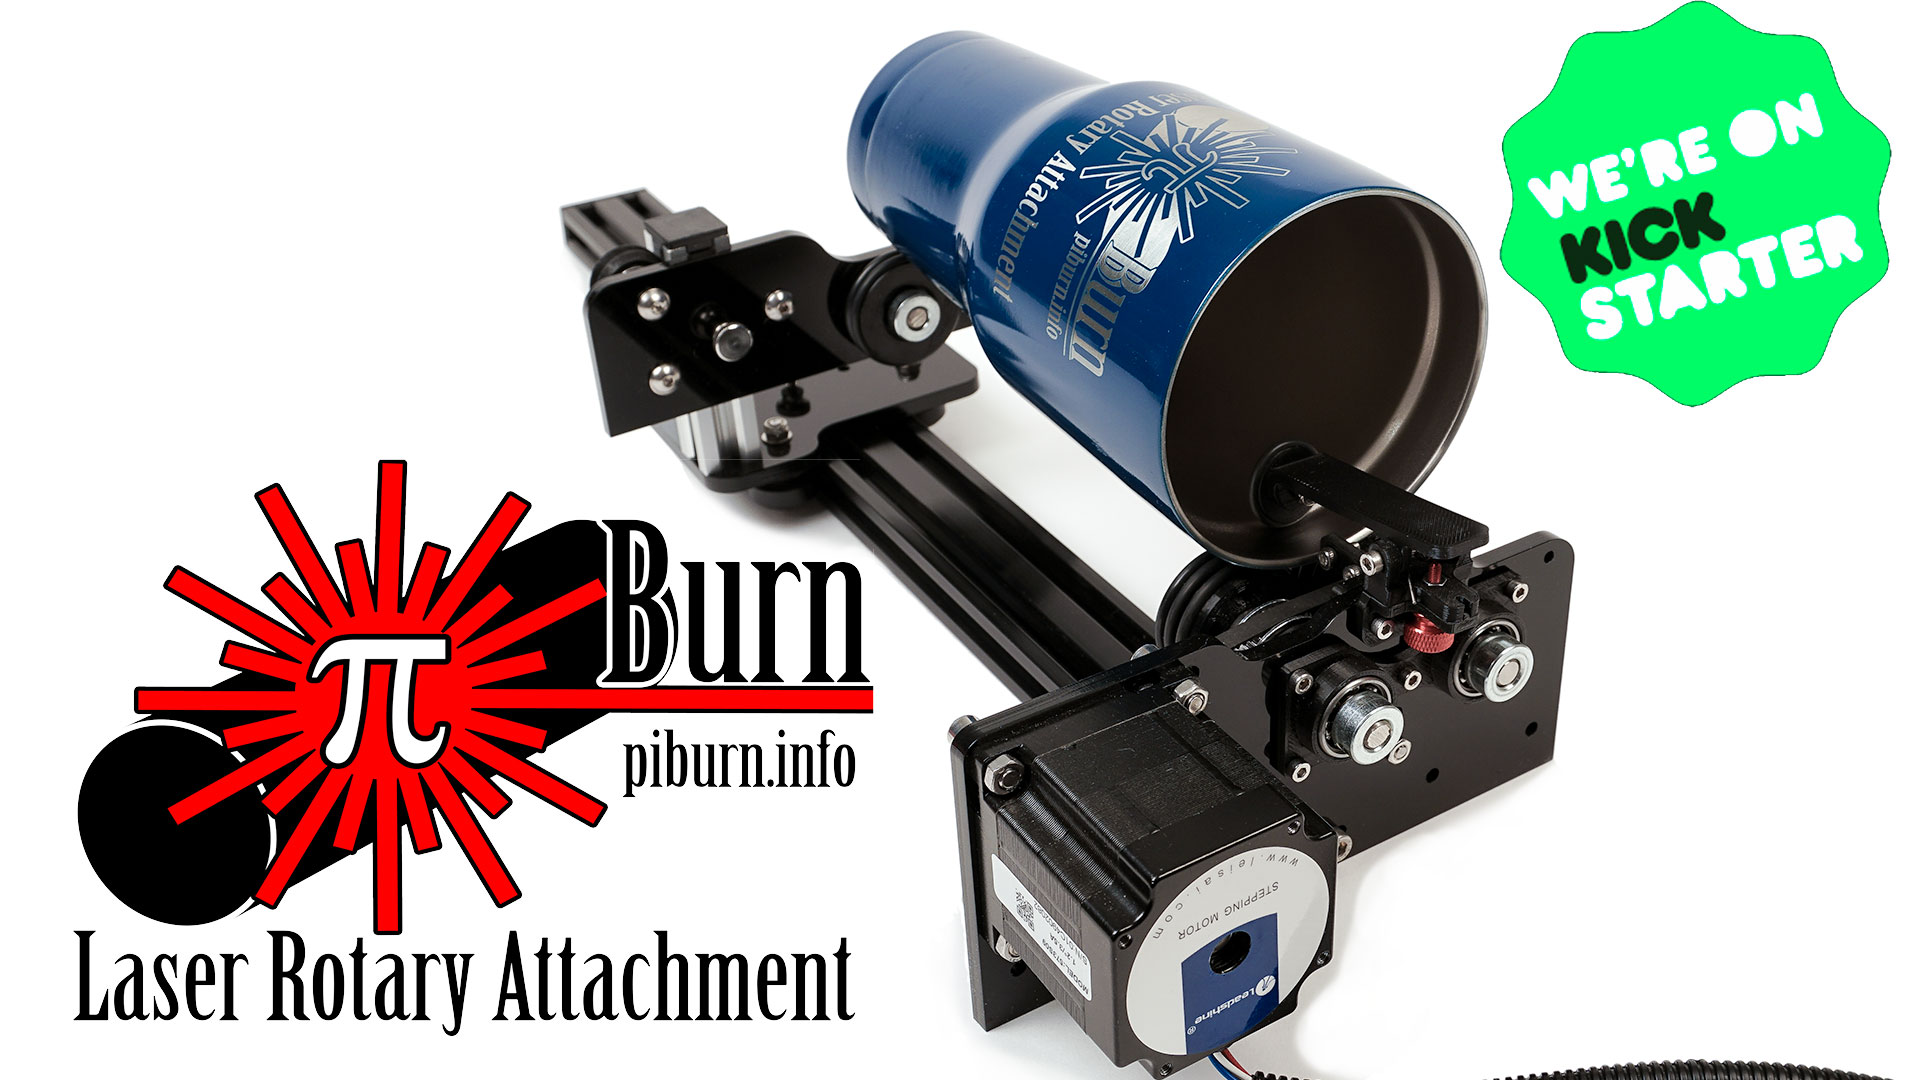 My first Kickstarter project – PiBurn Rotary Attachment for lasers